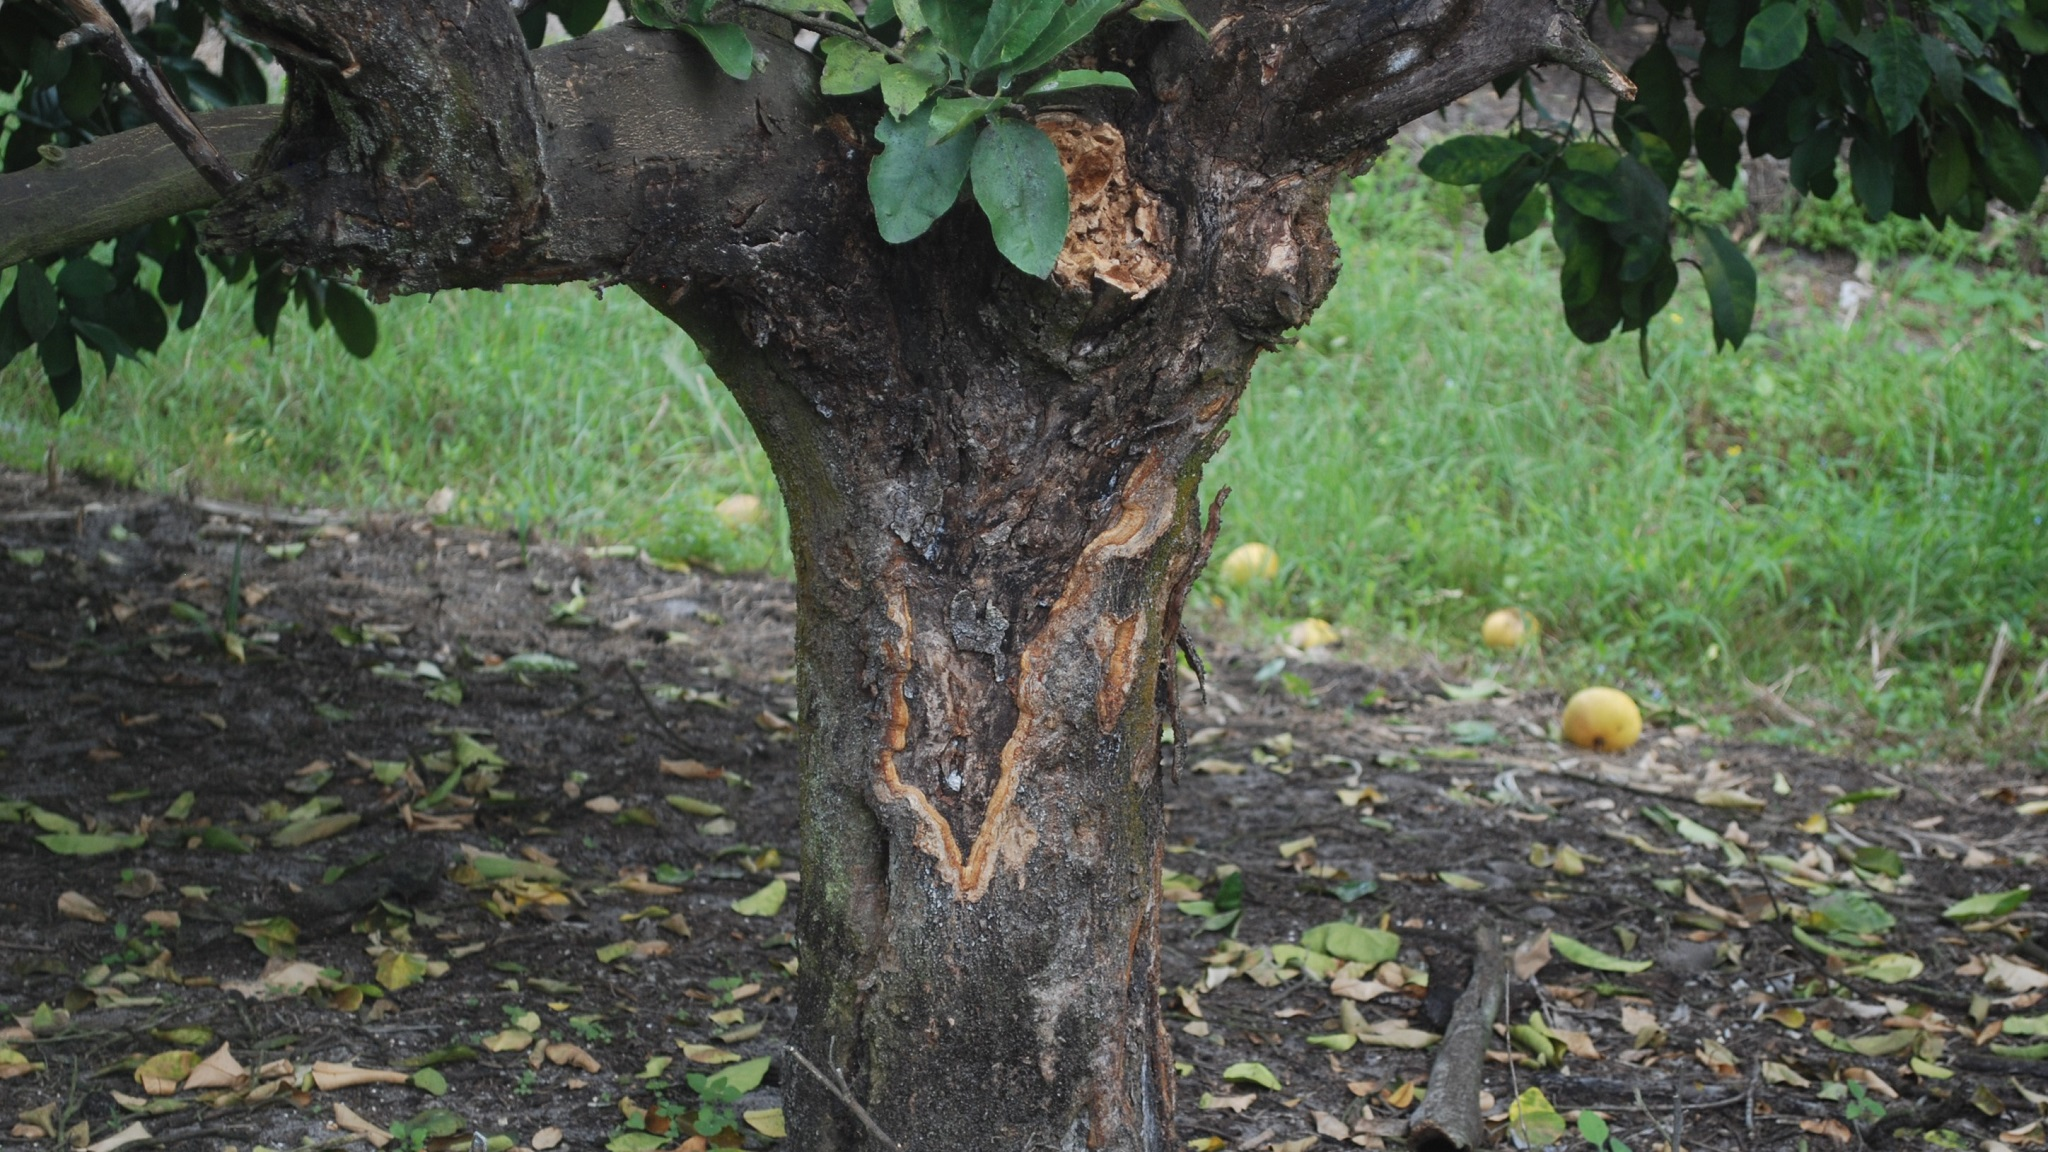 This agronomic image shows a citrus tree.